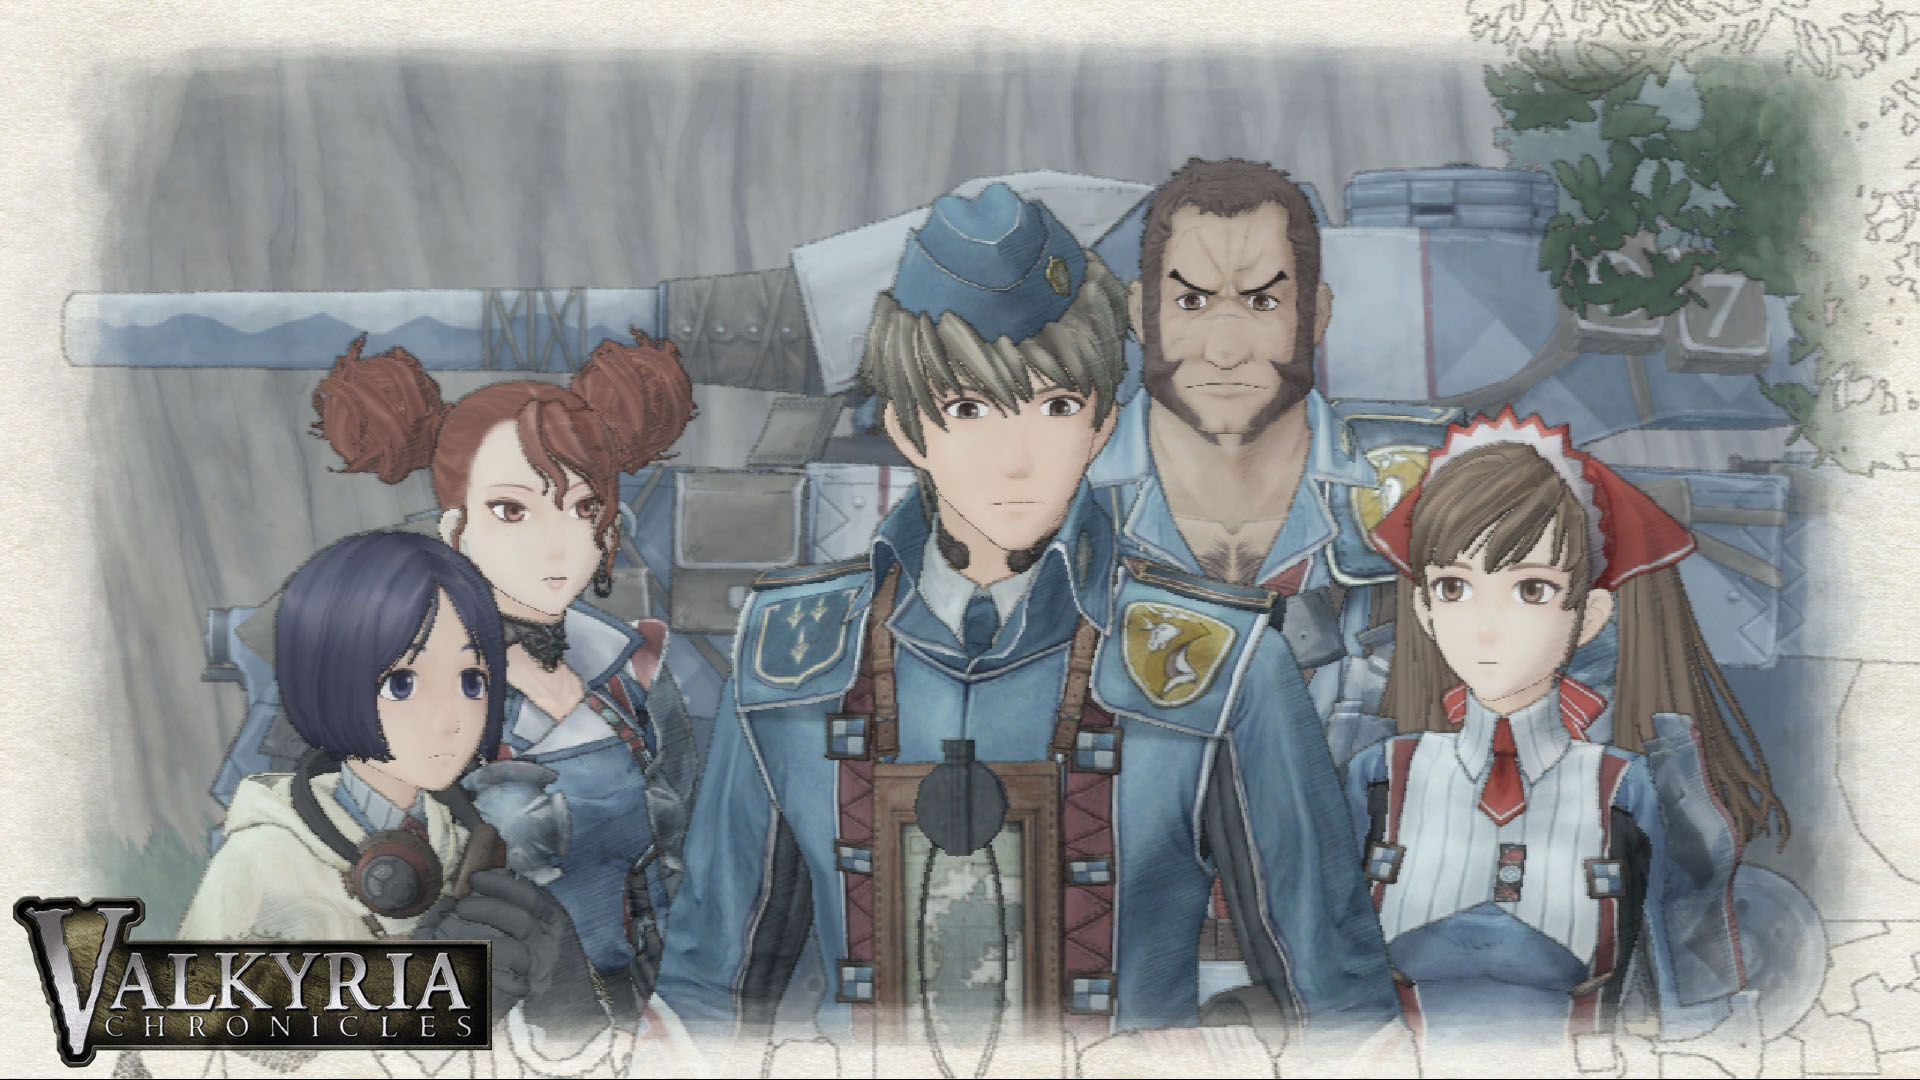 Valkyria Chronicles II psp by EvannGeo on DeviantArt 1920x1080